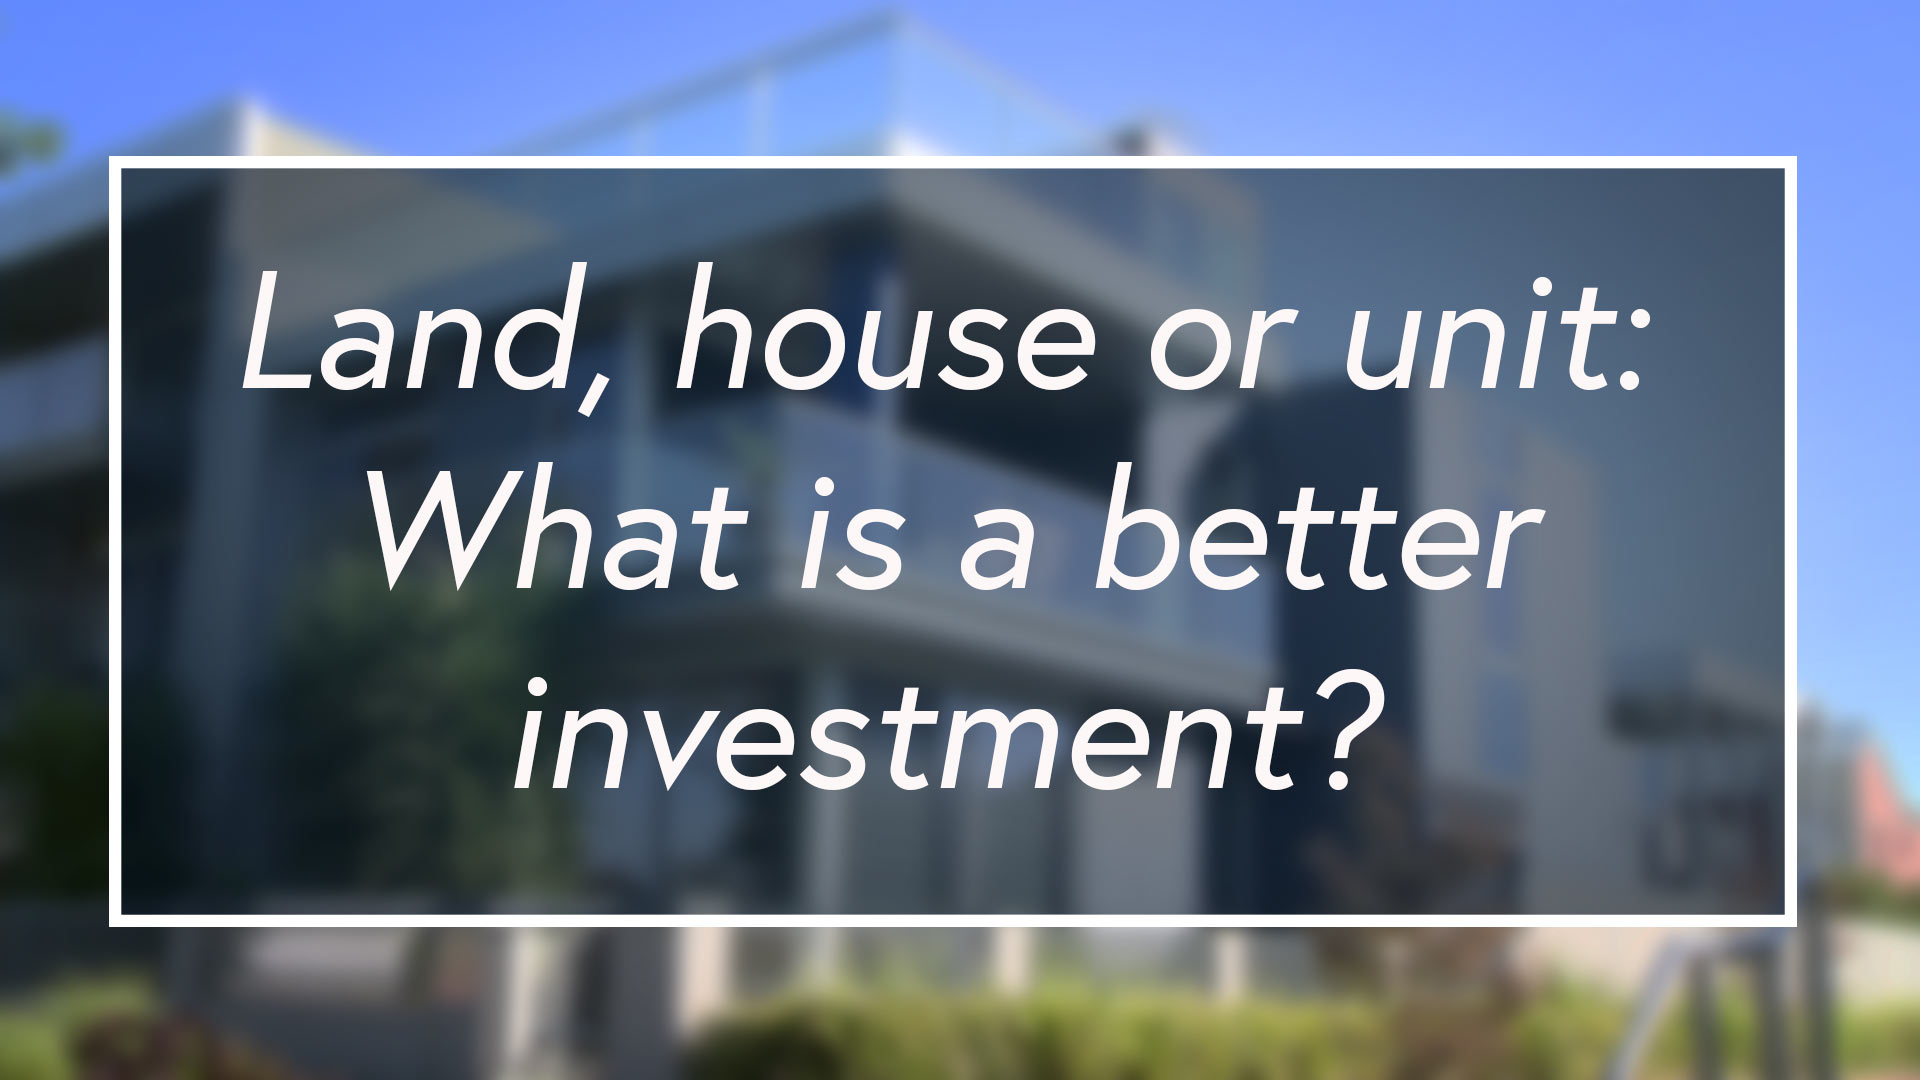 Land, house or unit: What is a better investment?